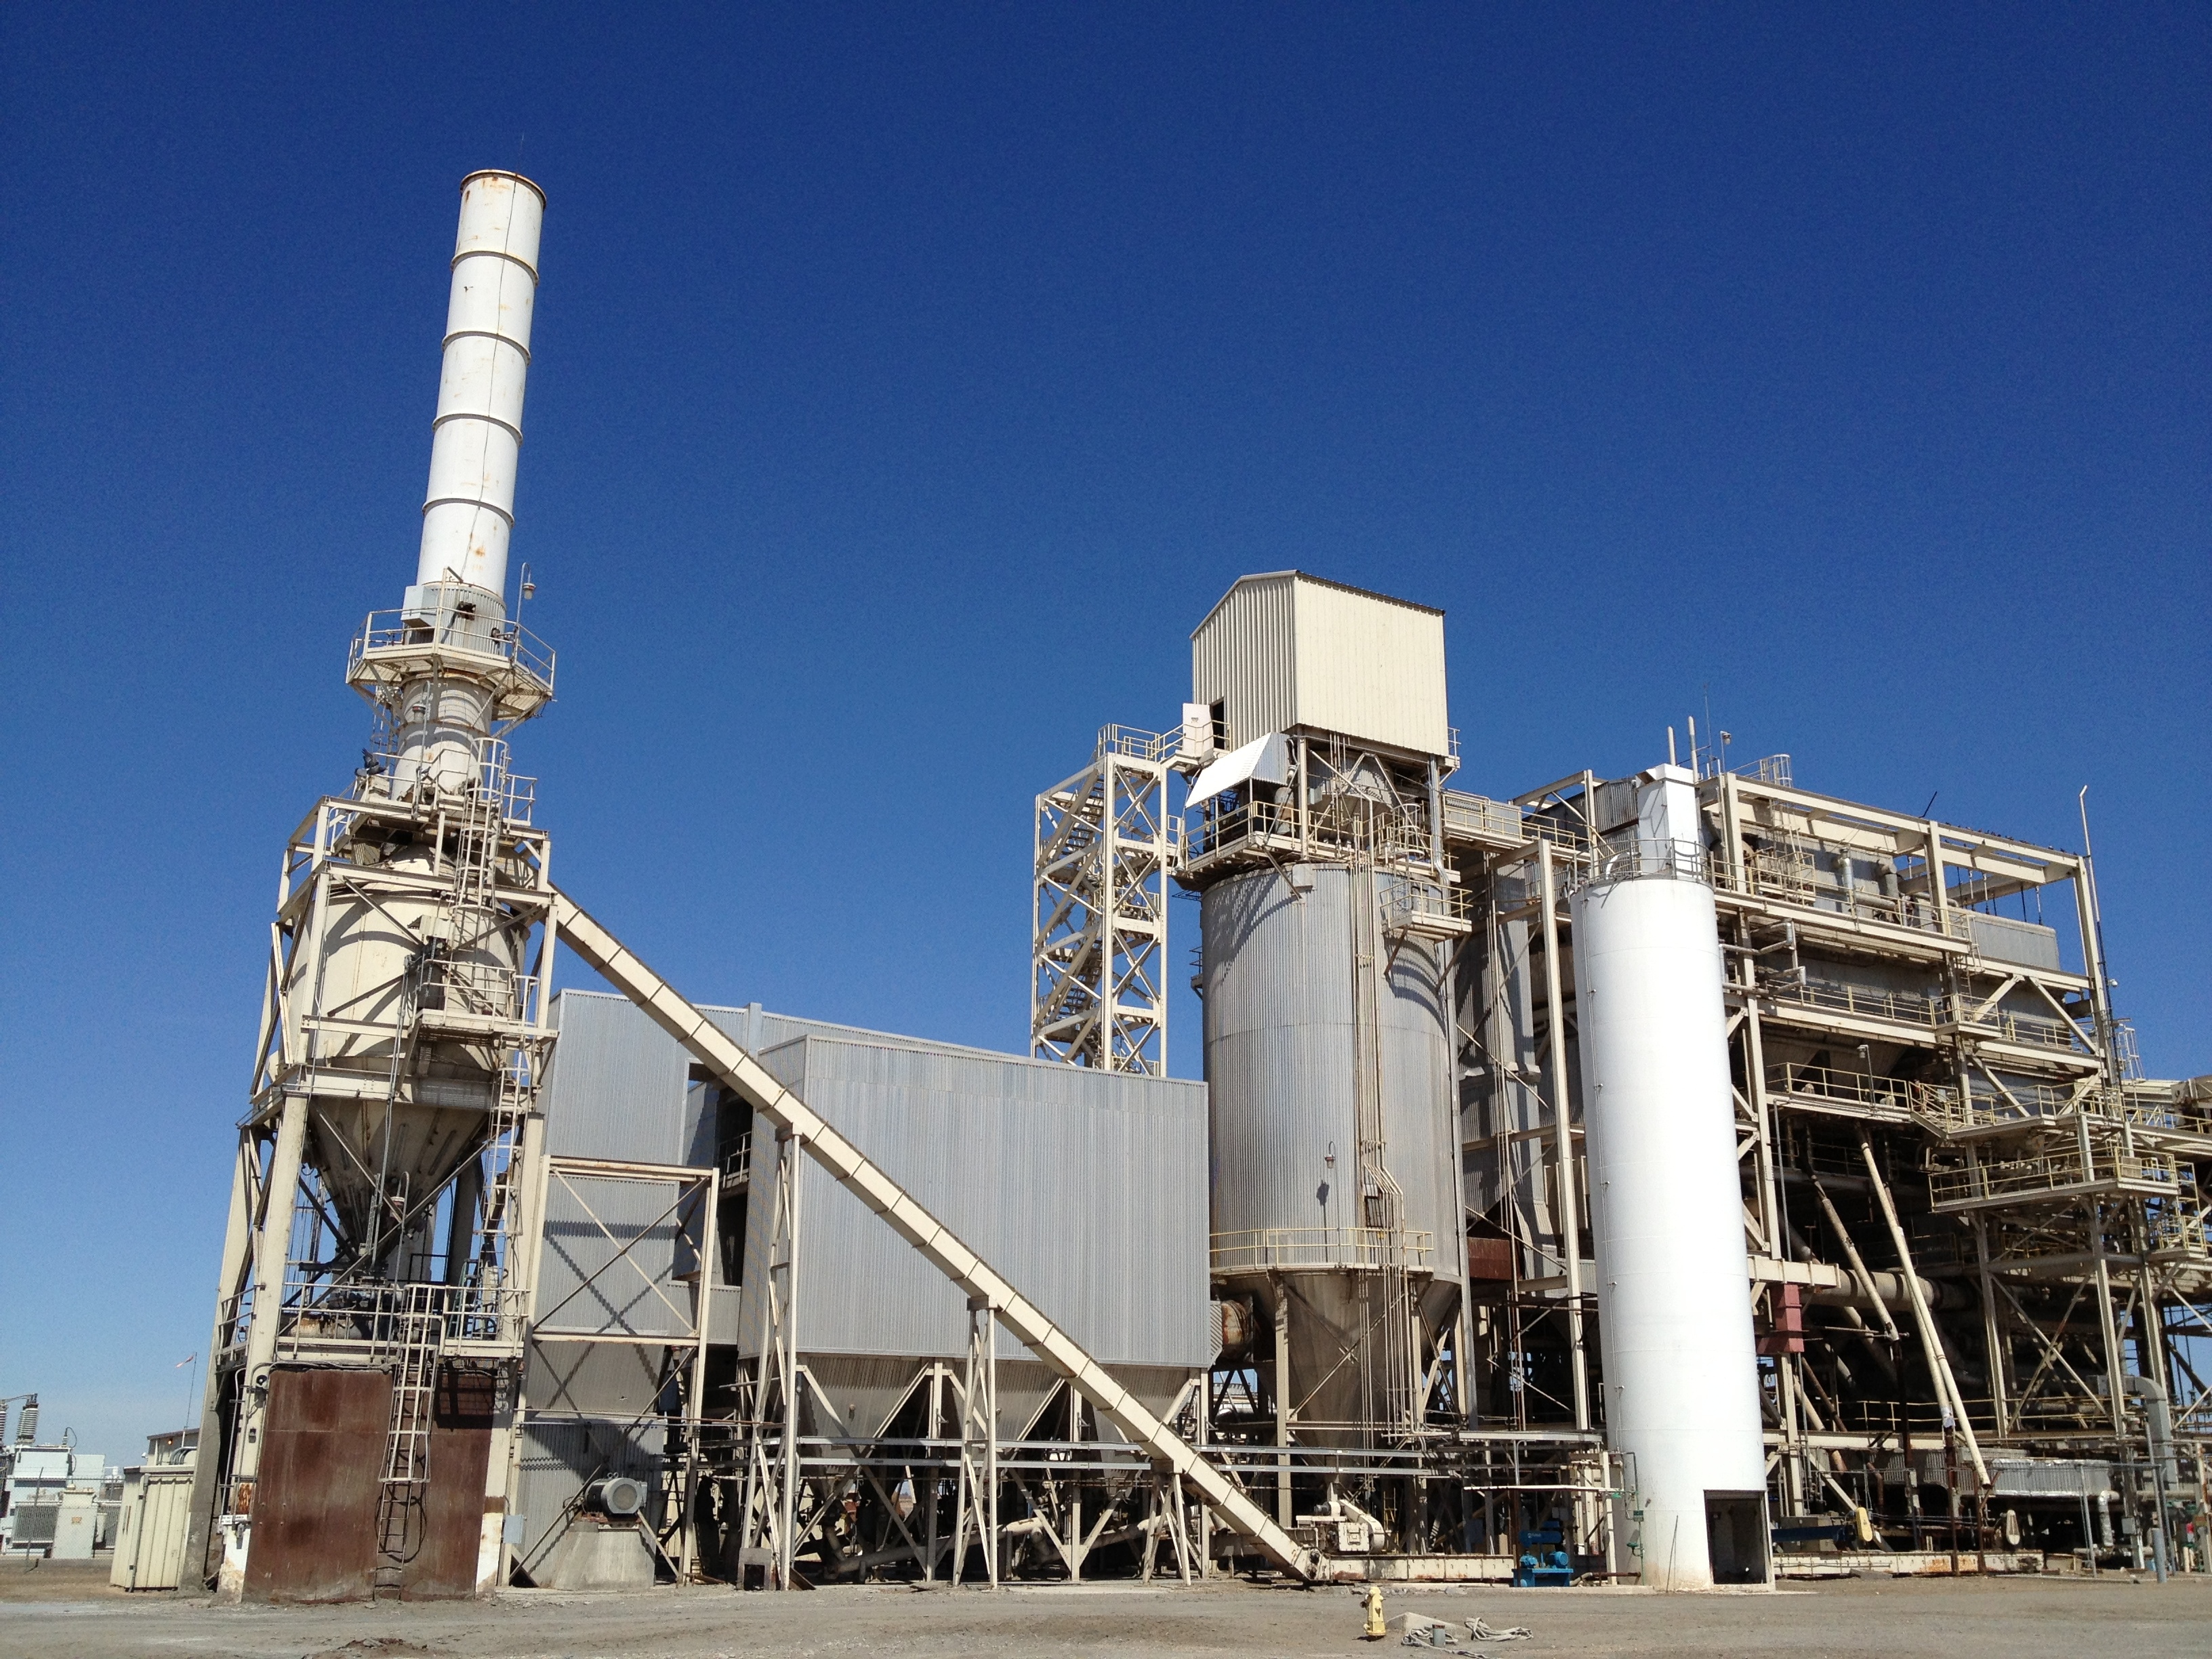 18-mw-biomass-power-plant-580